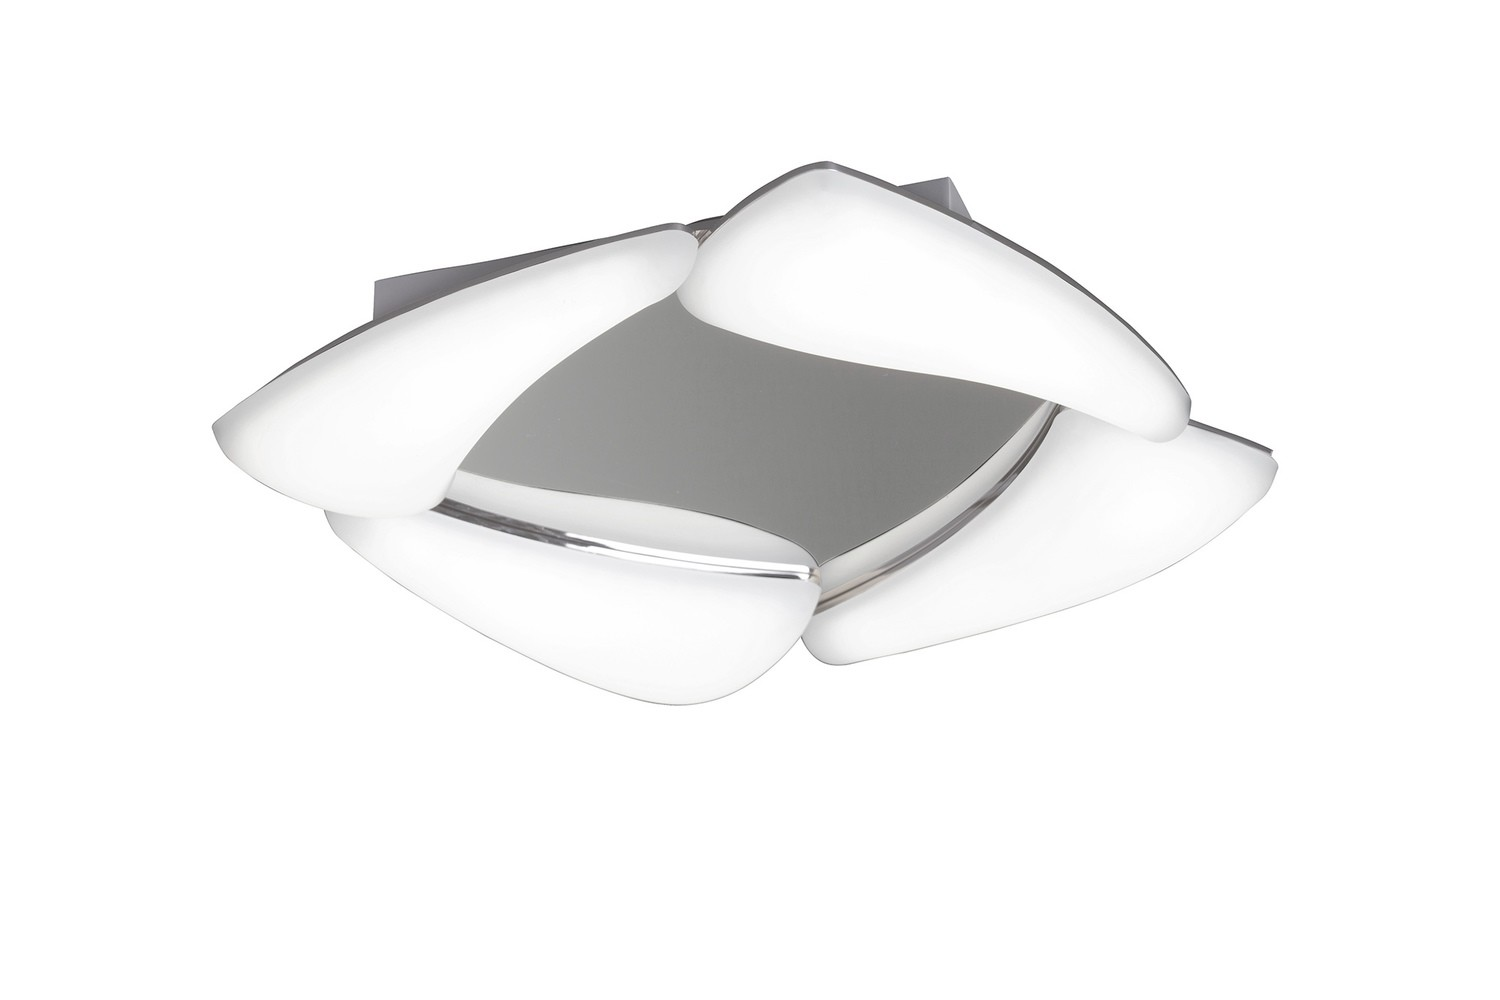 Mistral Ceiling 24W LED 3000K, 2160lm, Polished Chrome/Frosted Acrylic, 3yrs Warranty